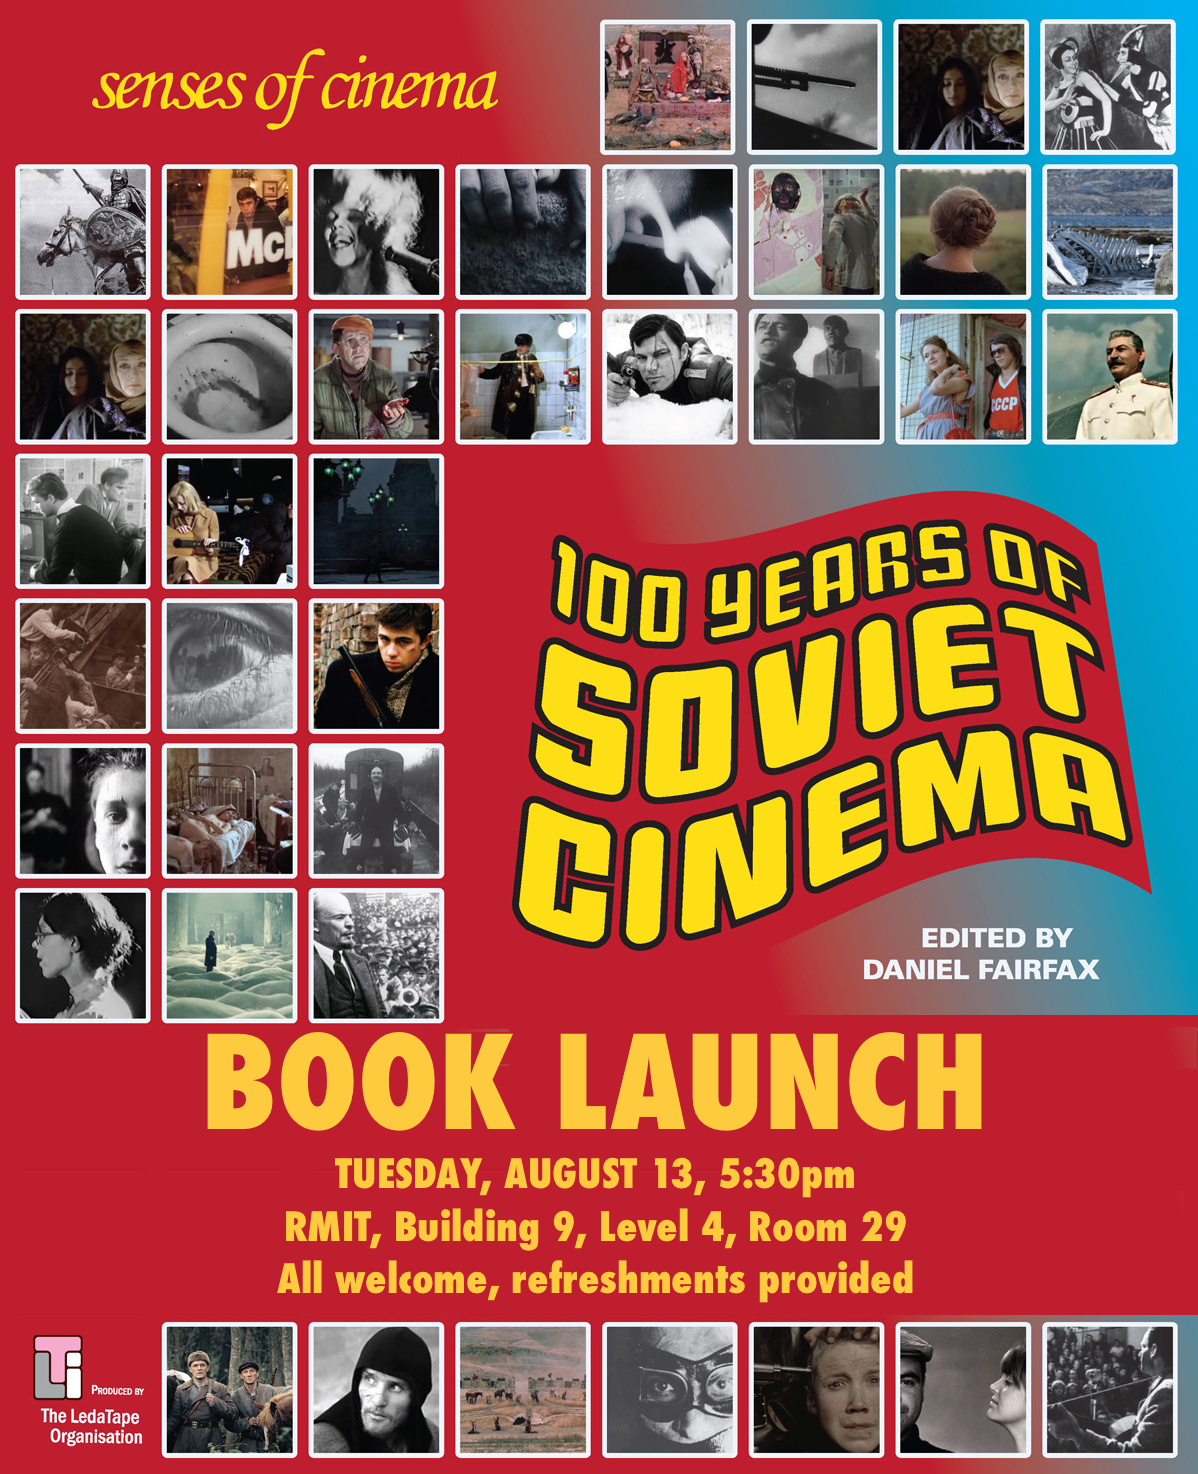 BOOK LAUNCH – 100 Years of Soviet Cinema